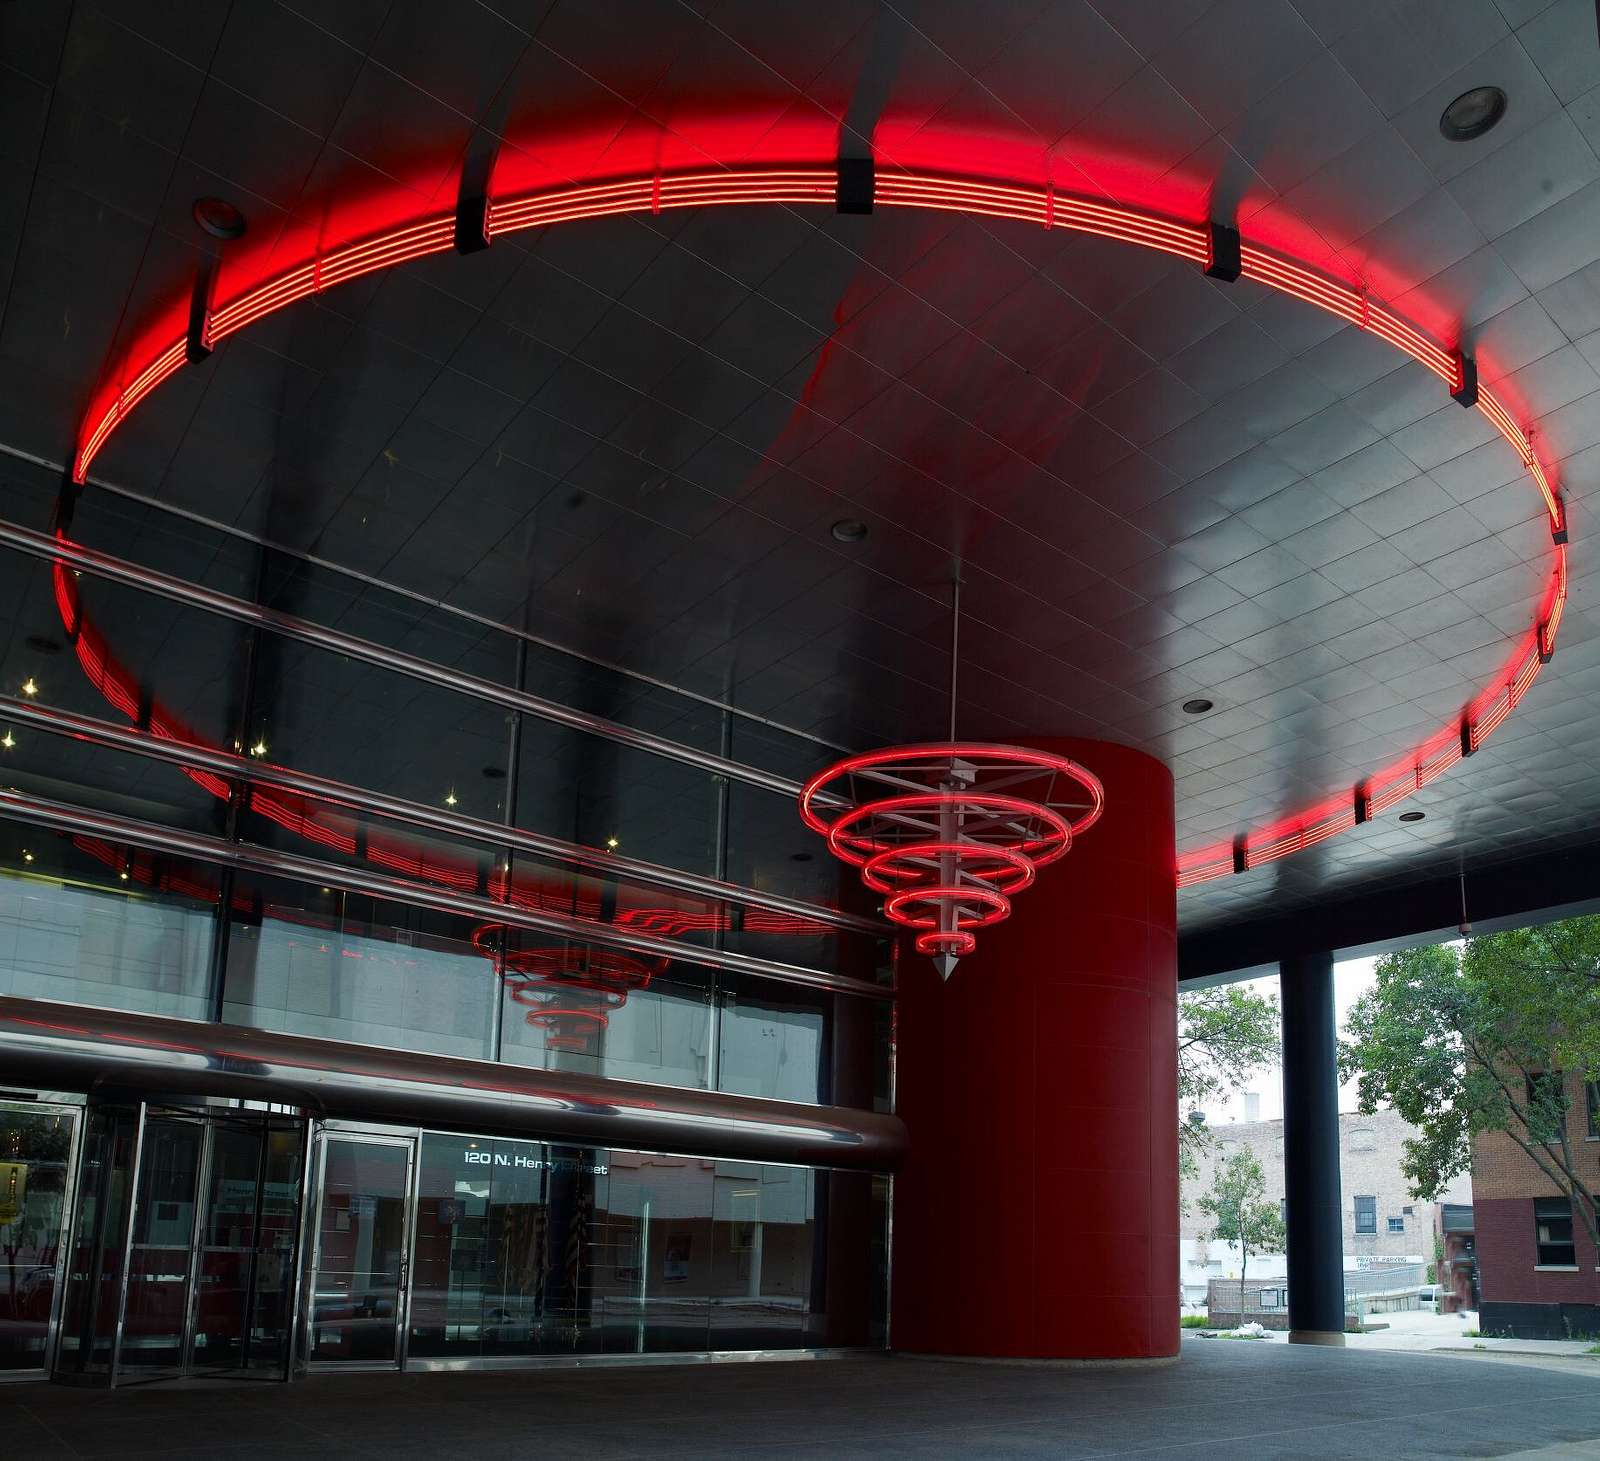 Untitled neon sculpture with stainless steel ceiling, located at exterior of U.S. Courthouse, Madison, Wisconsin